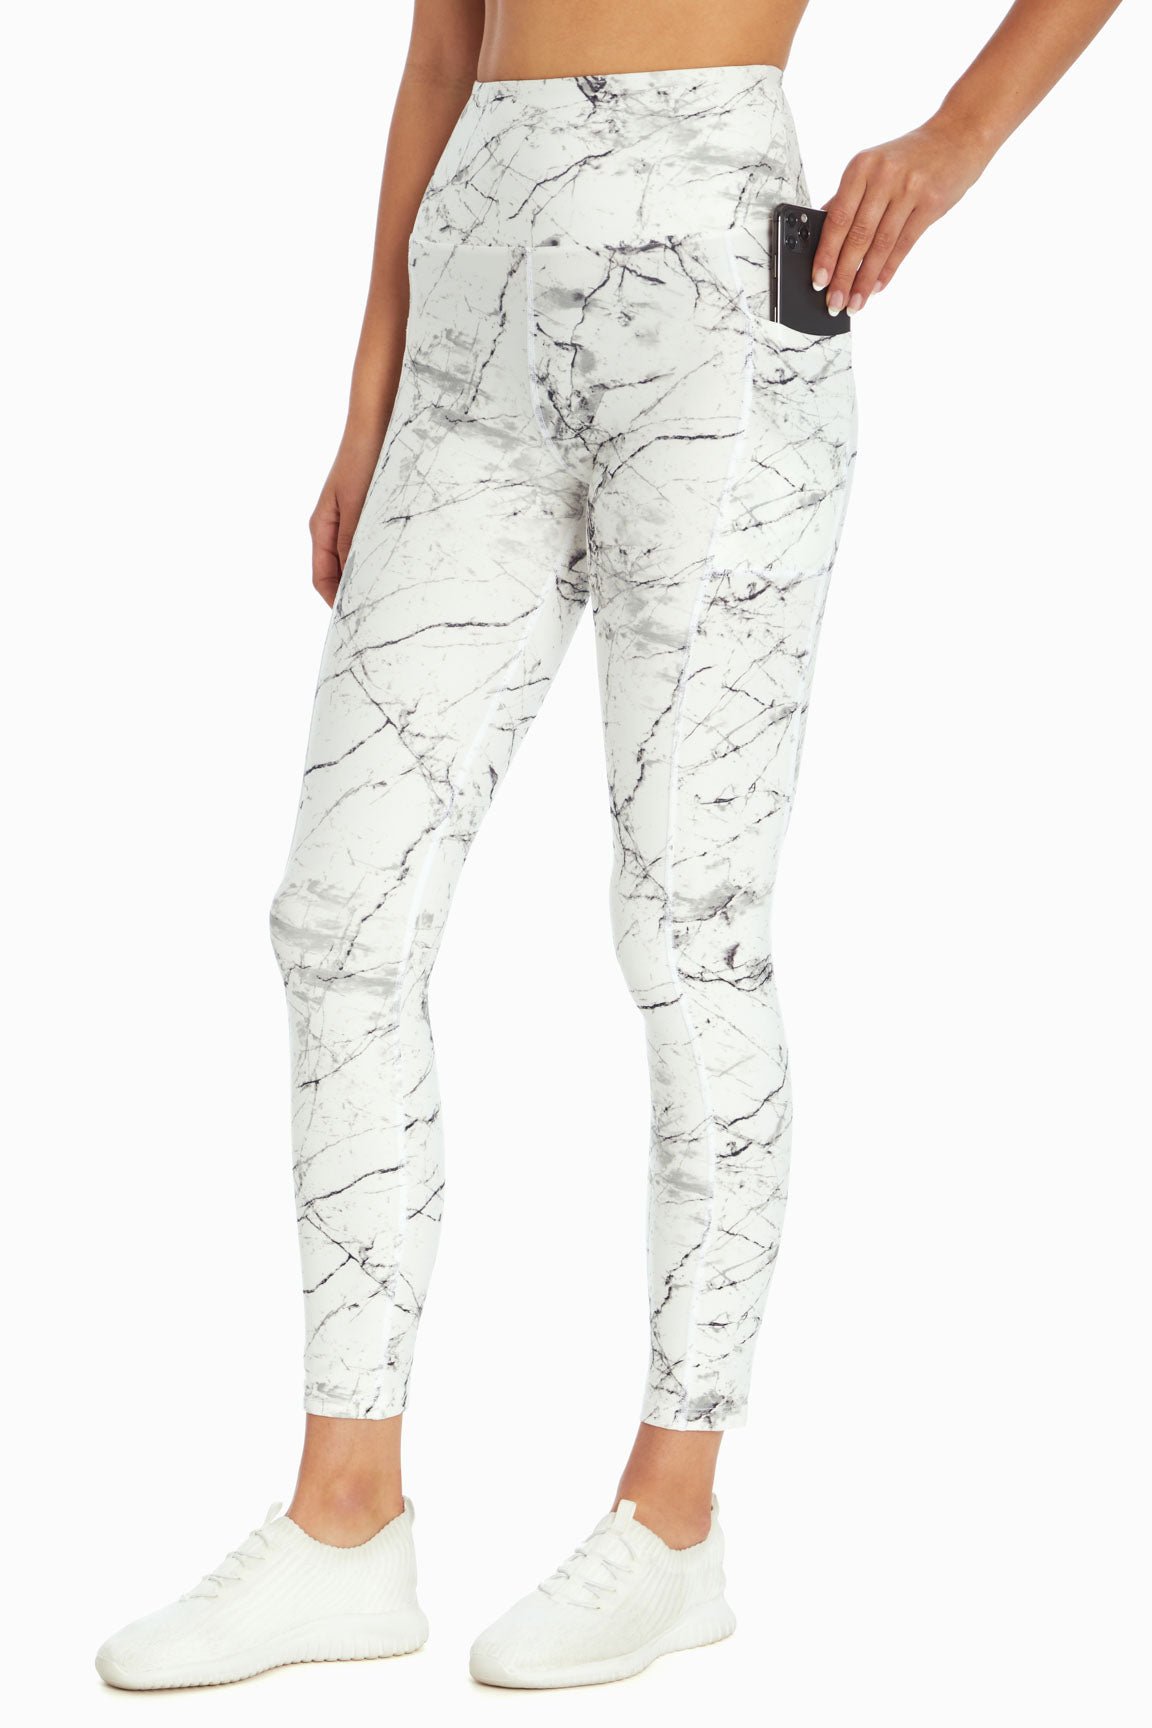 High Rise Flat Waist Ankle Legging (White Light Marble Cracks)